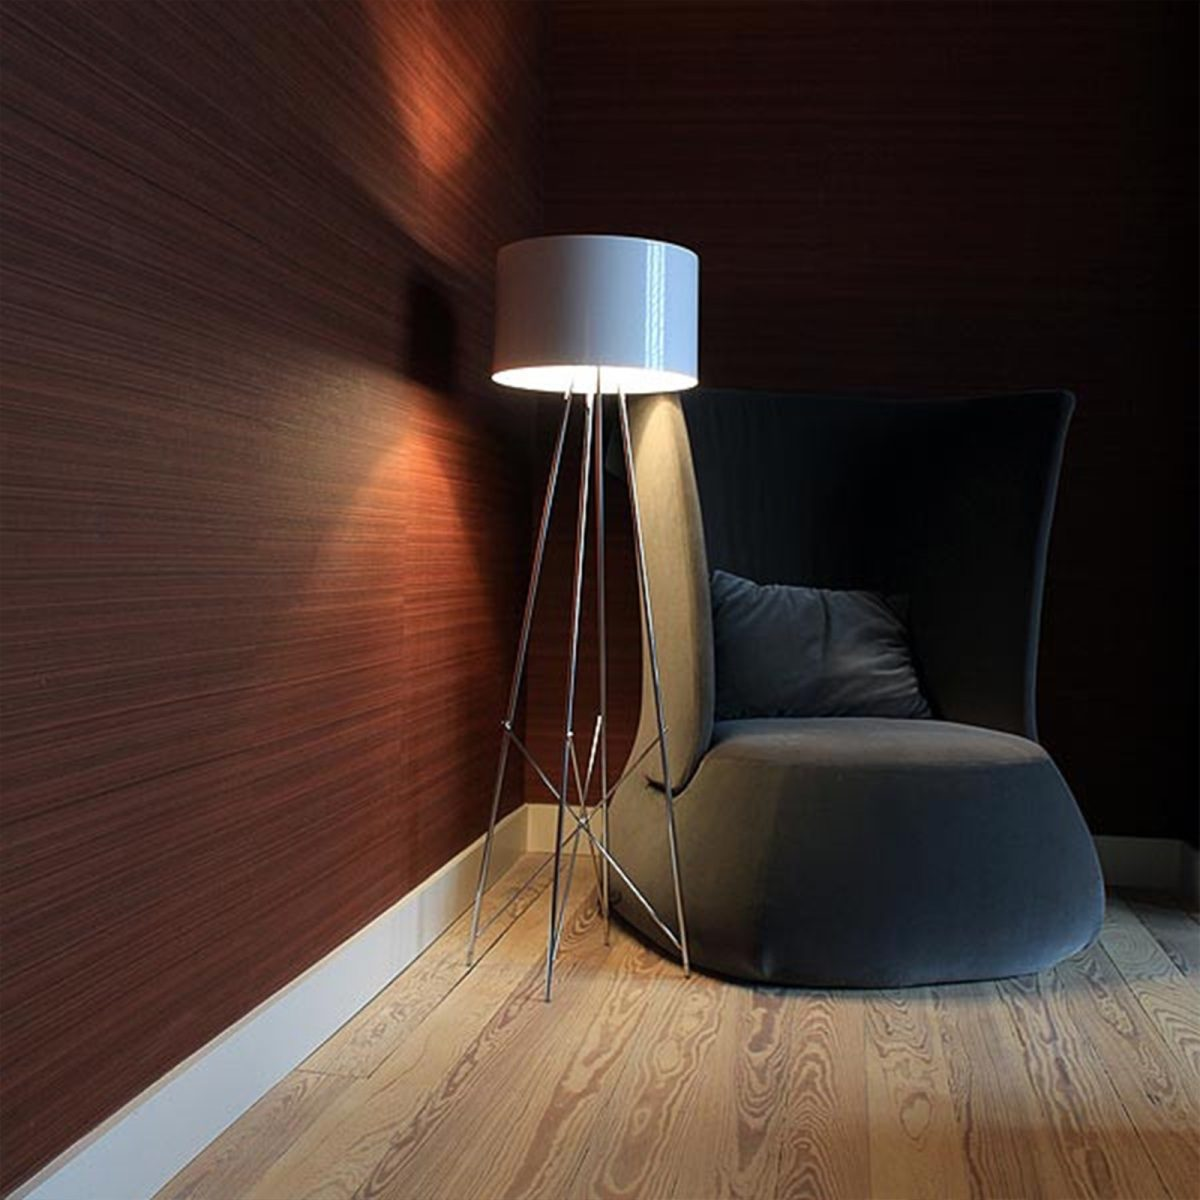 ray-f1-f2-floor-lamp-flosz